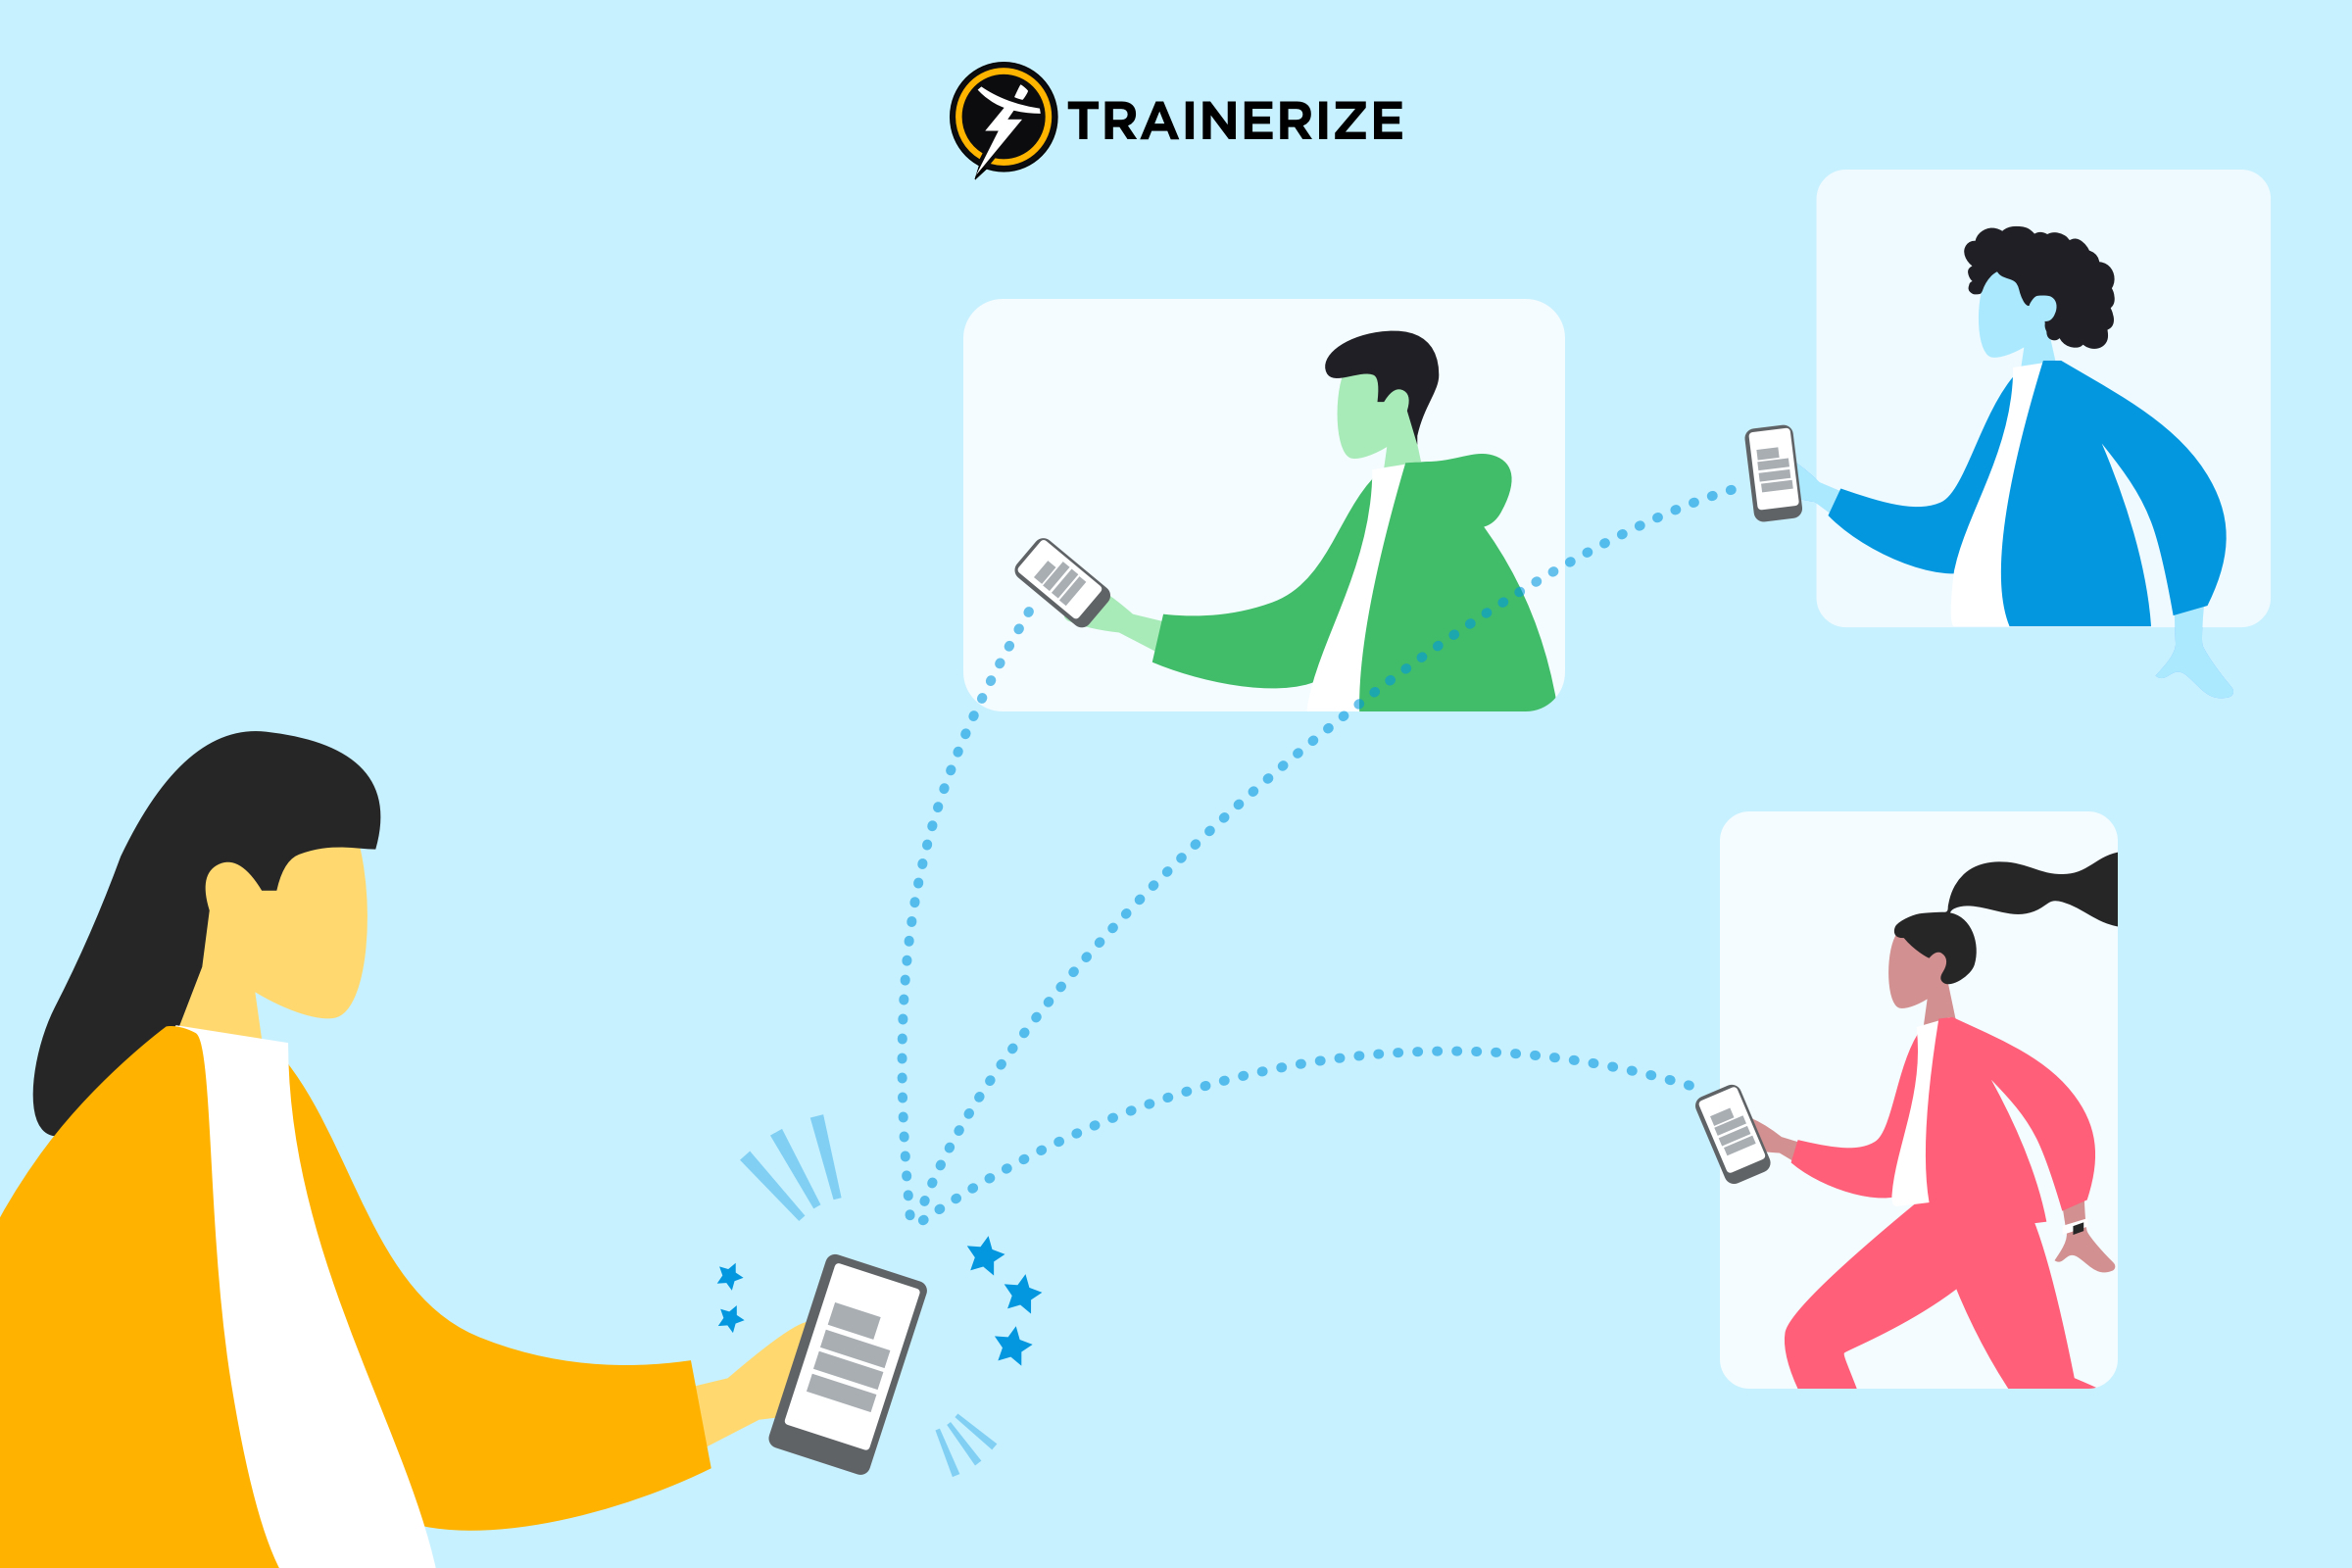 Refer Trainerize to a friend and you could get credit